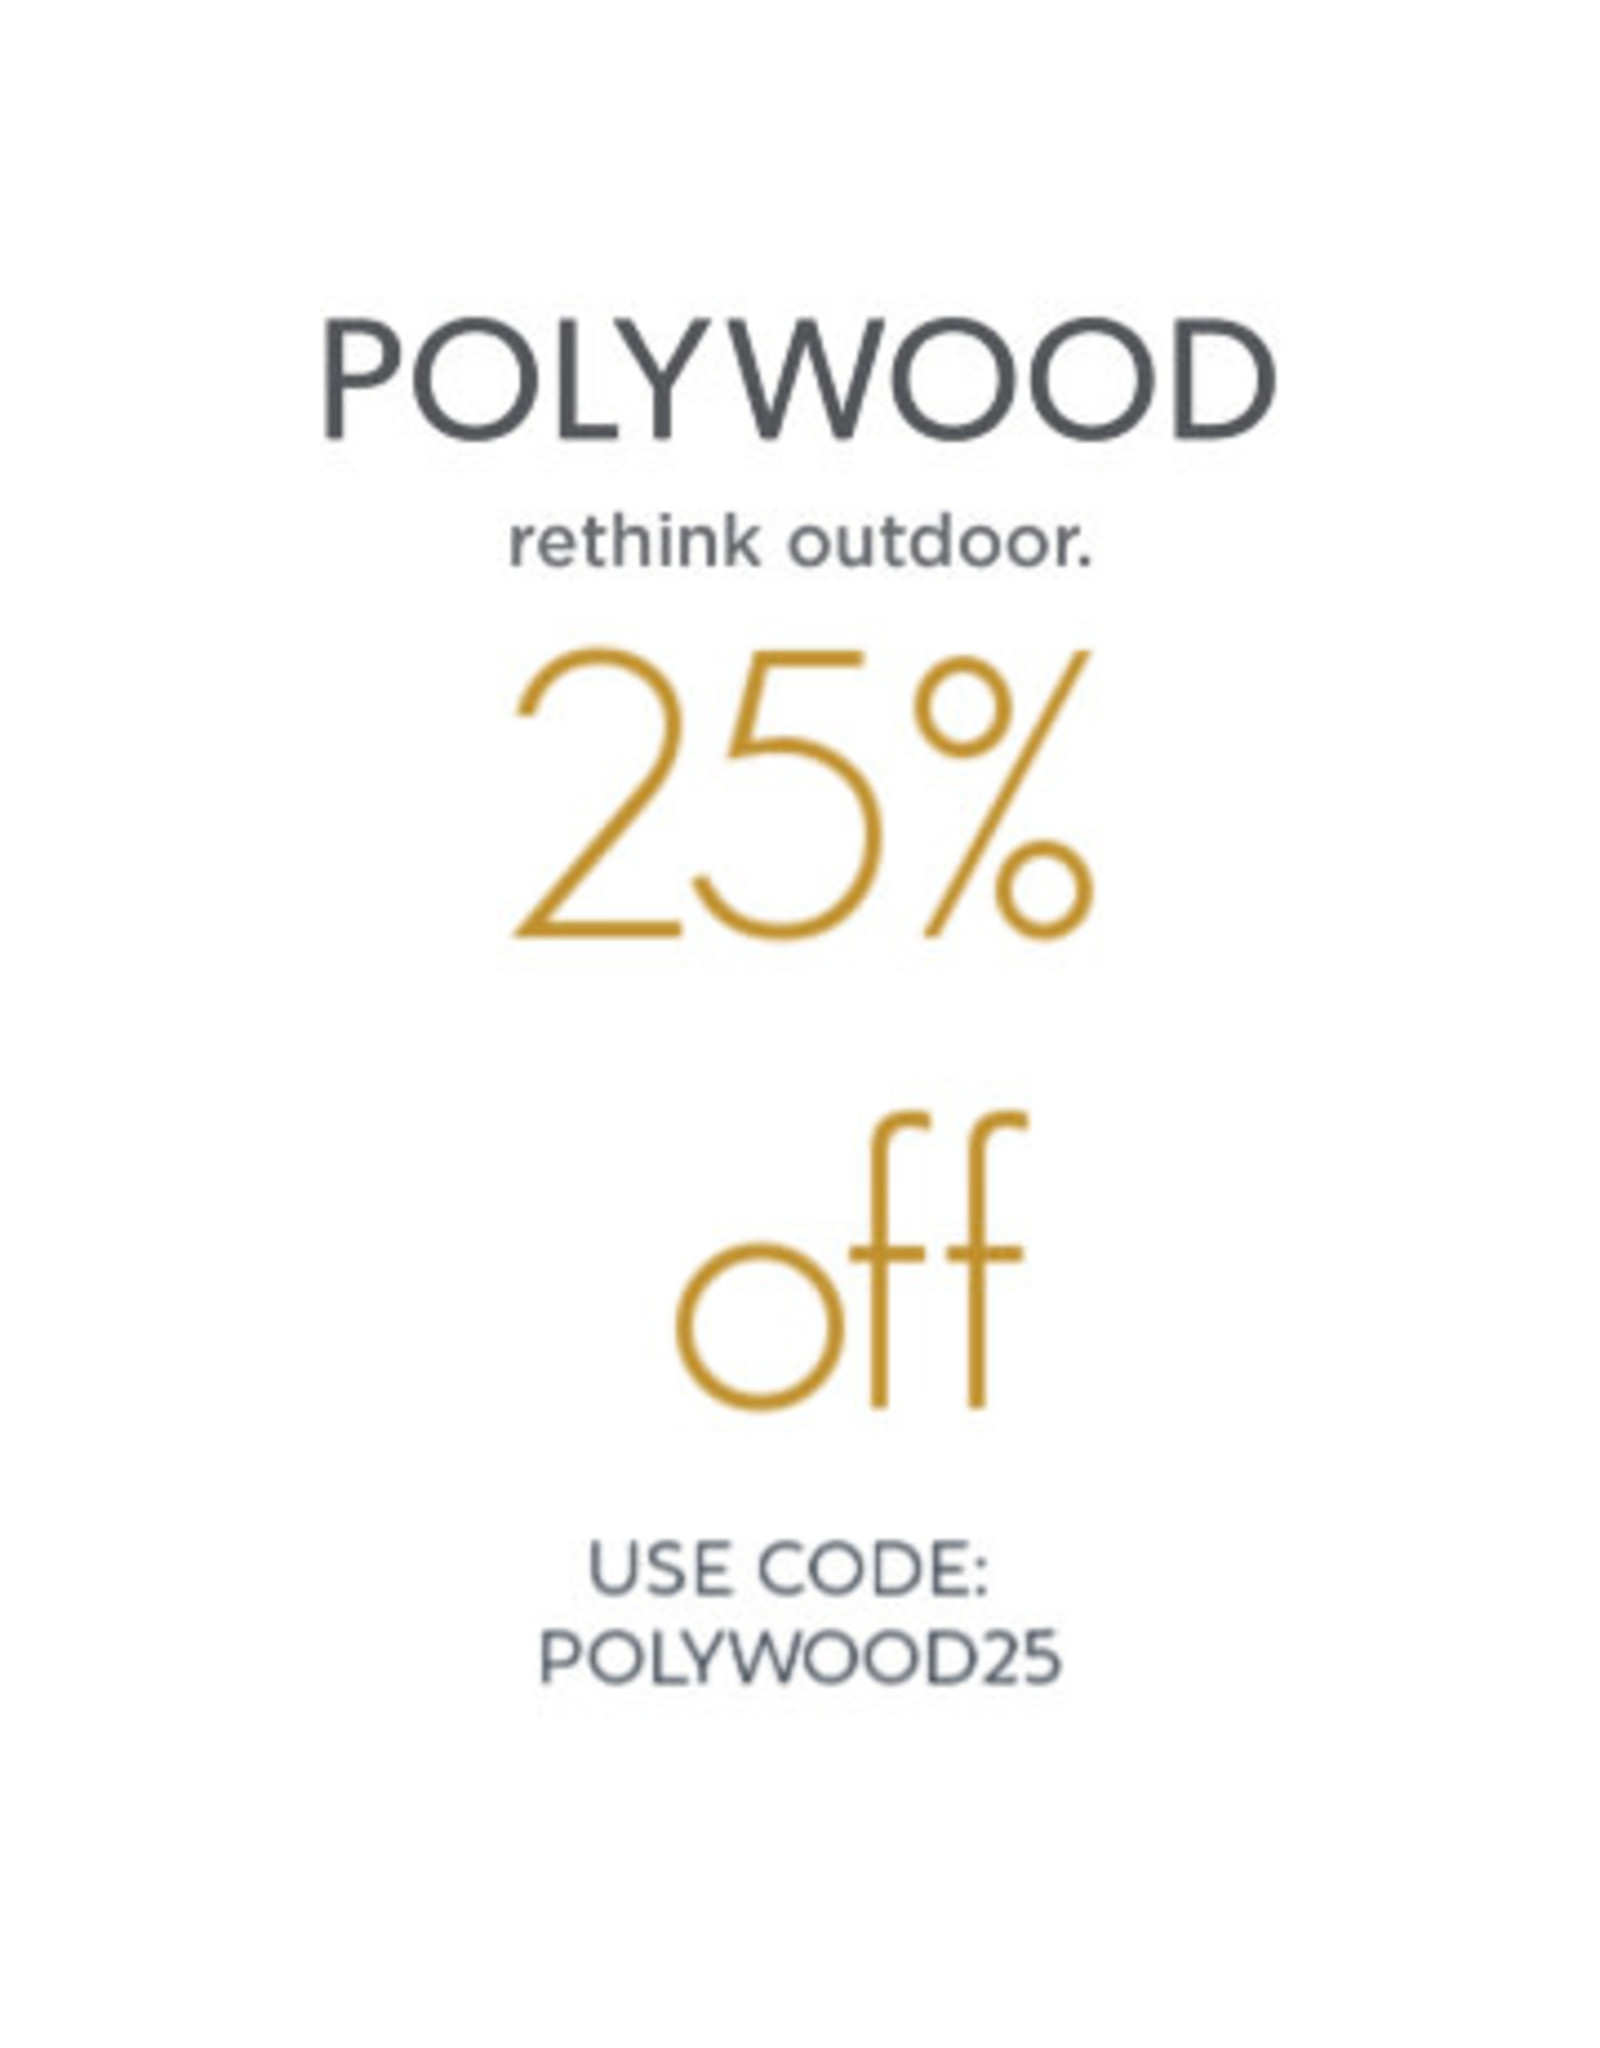 Polywood Discount- 25%